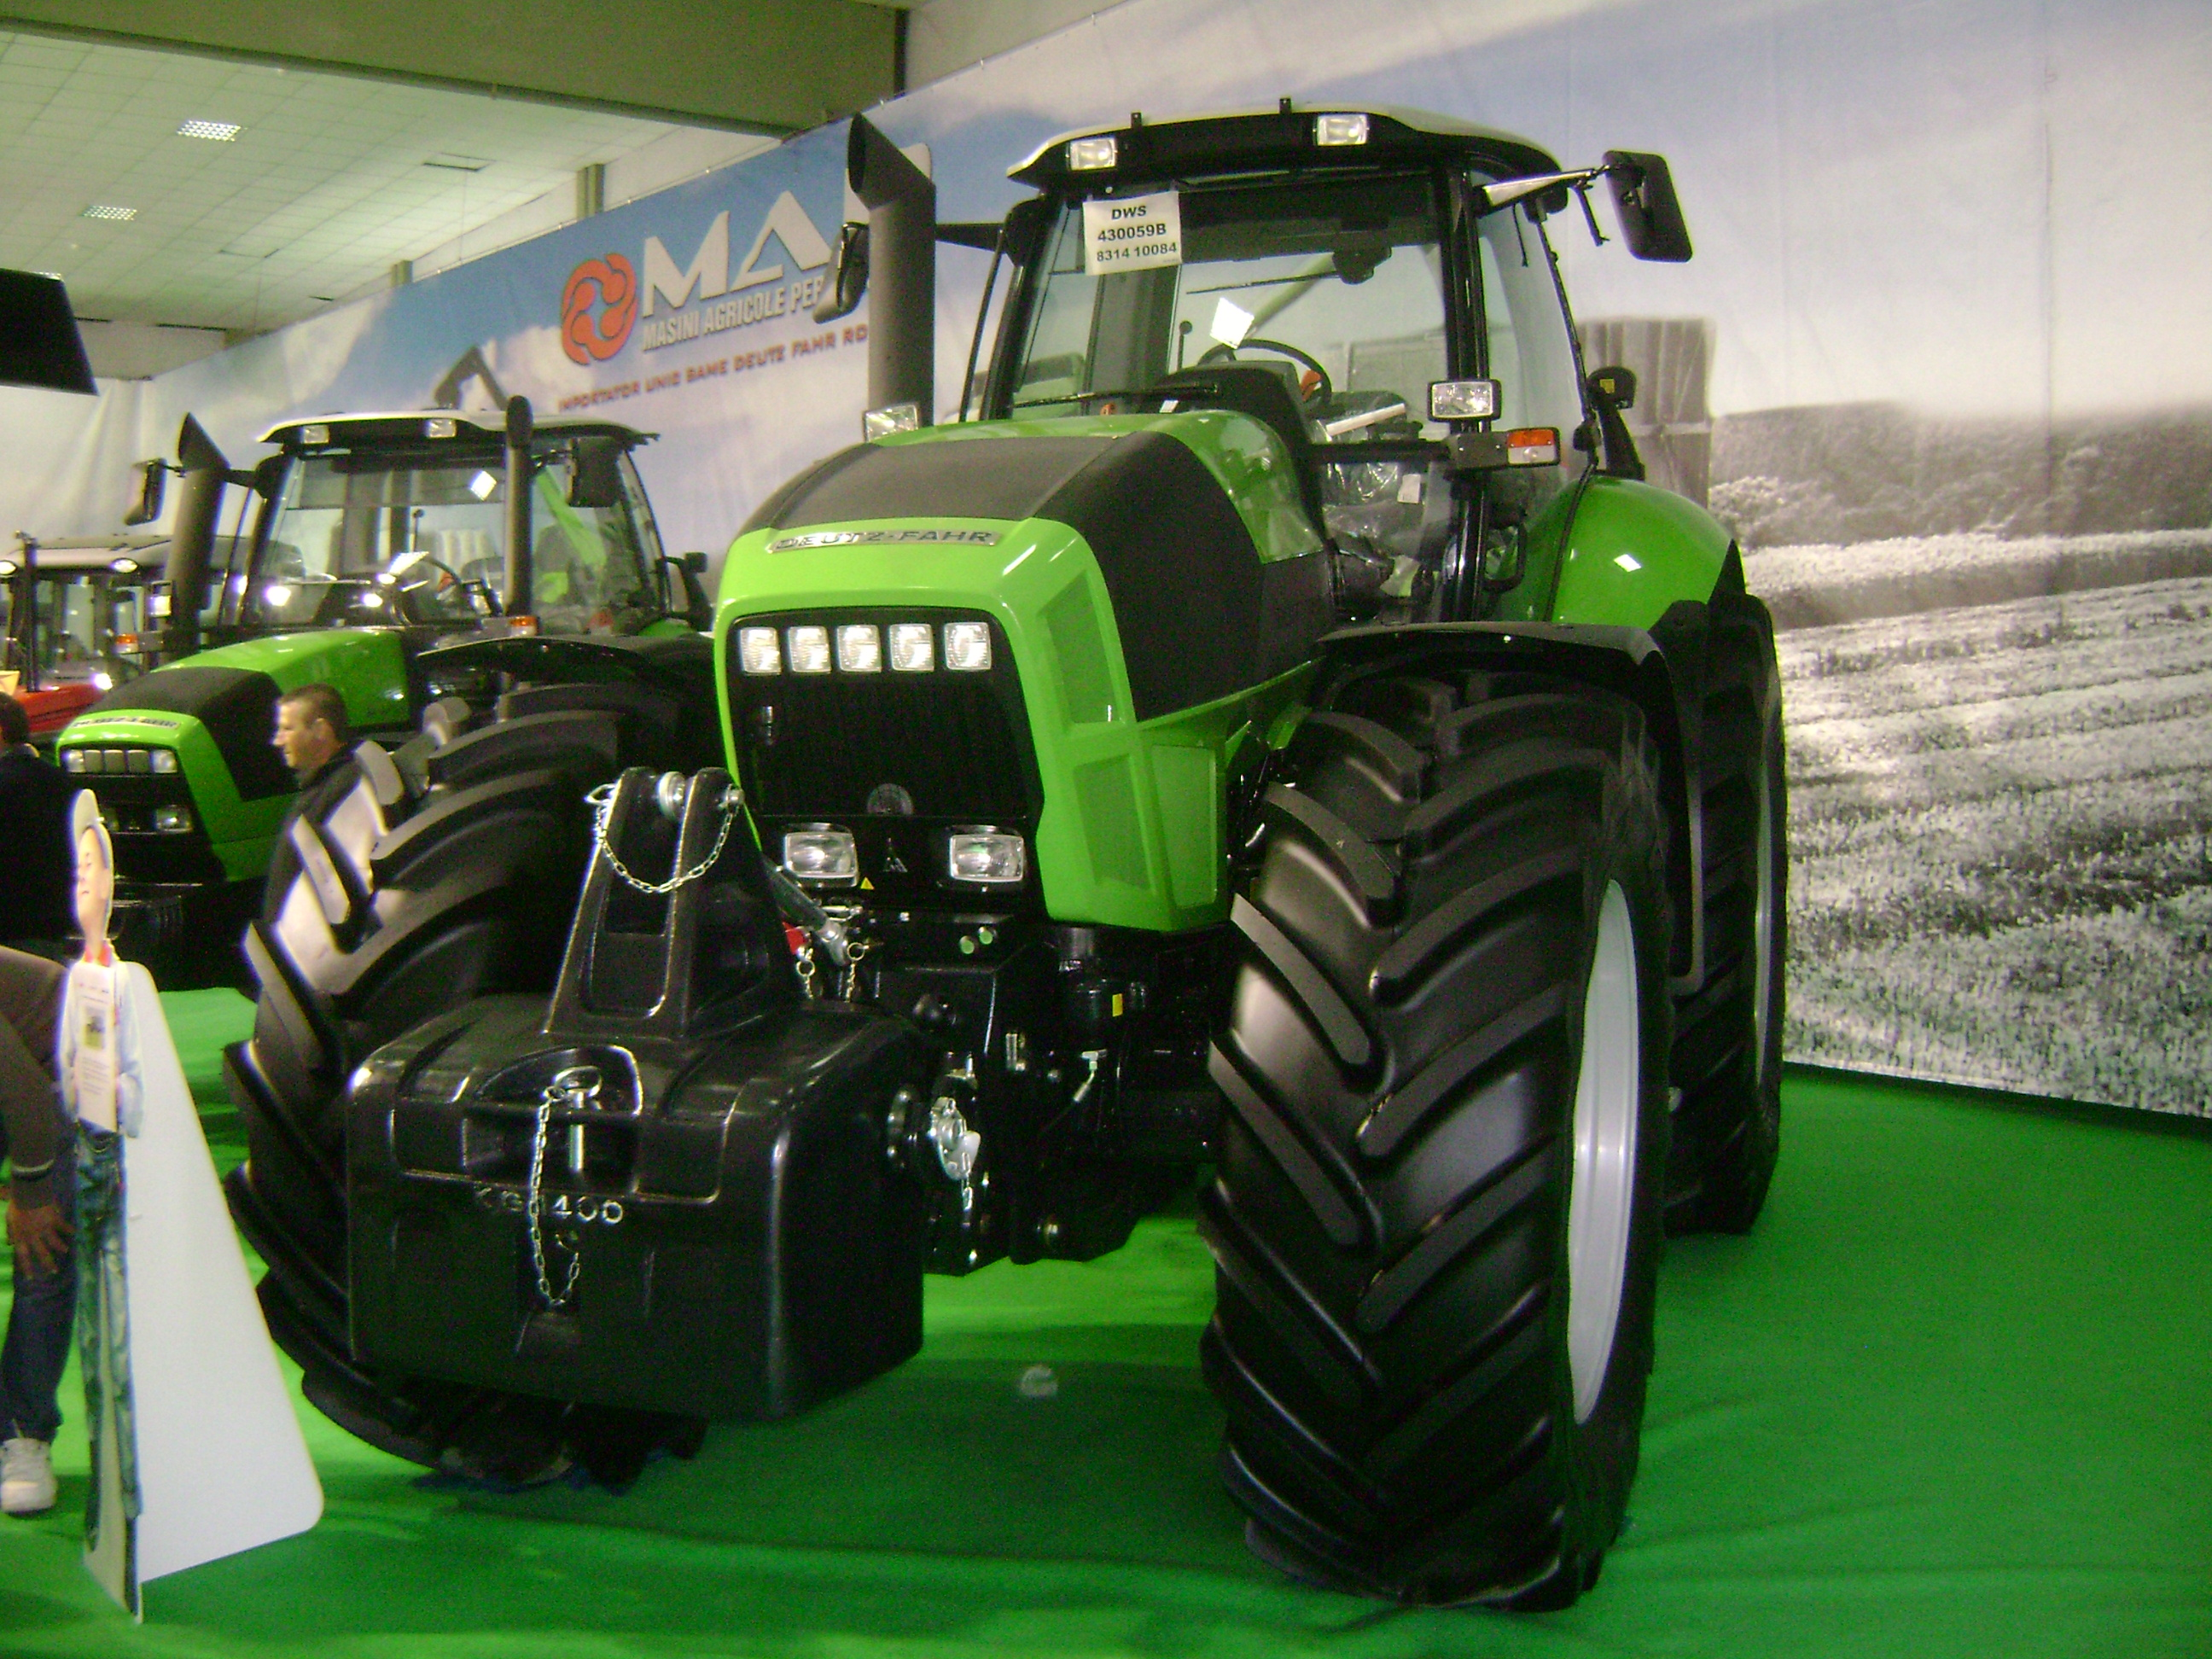 File:Deutz-Fahr Agrotron X Series Tractor at IndAgra Farm Romexpo 2010 ...